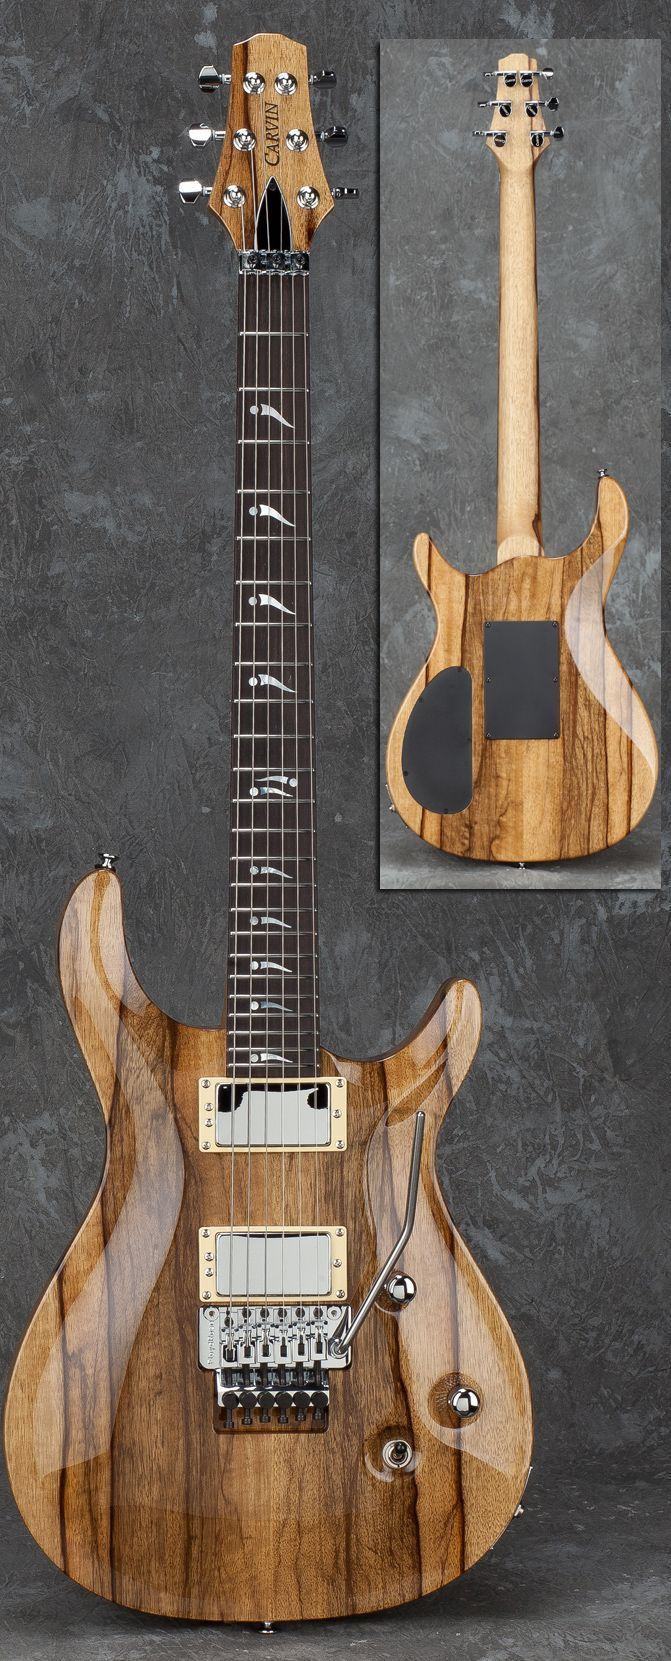 Carved-top Carvin with black limba body/neck/top (Carvin's new wood offering).